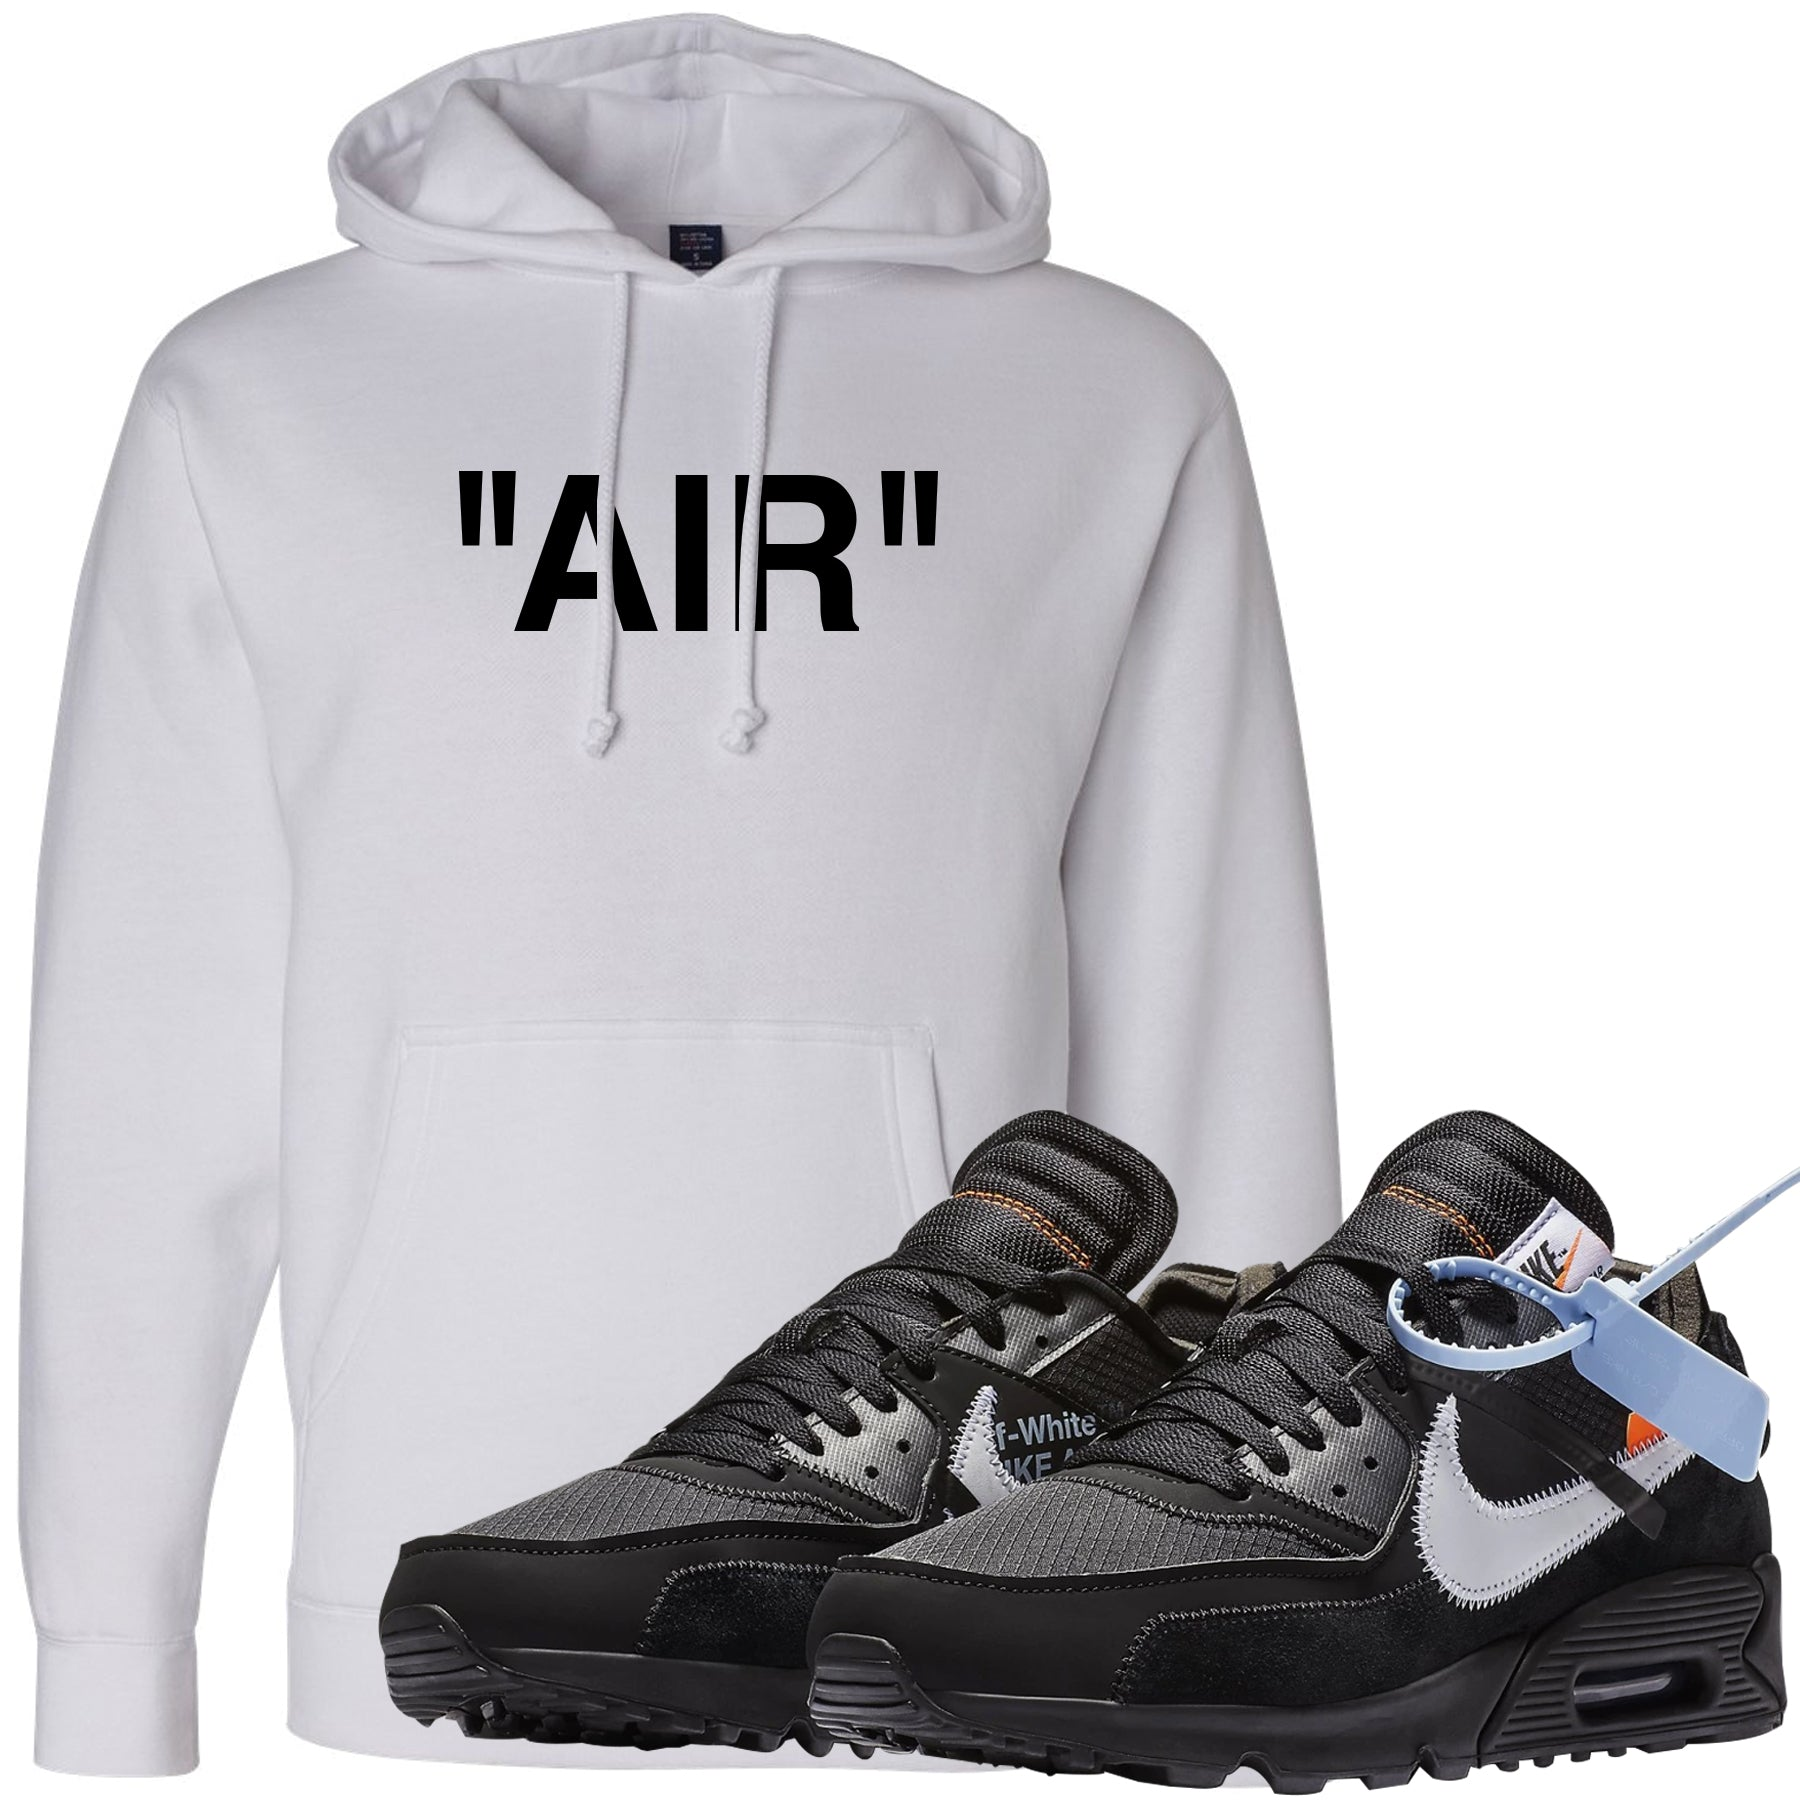 pretty nice 0c881 ecd1d Wear your Nike Air Max 90 OFF-WHITE Black sneakers with this OFF-WHITE